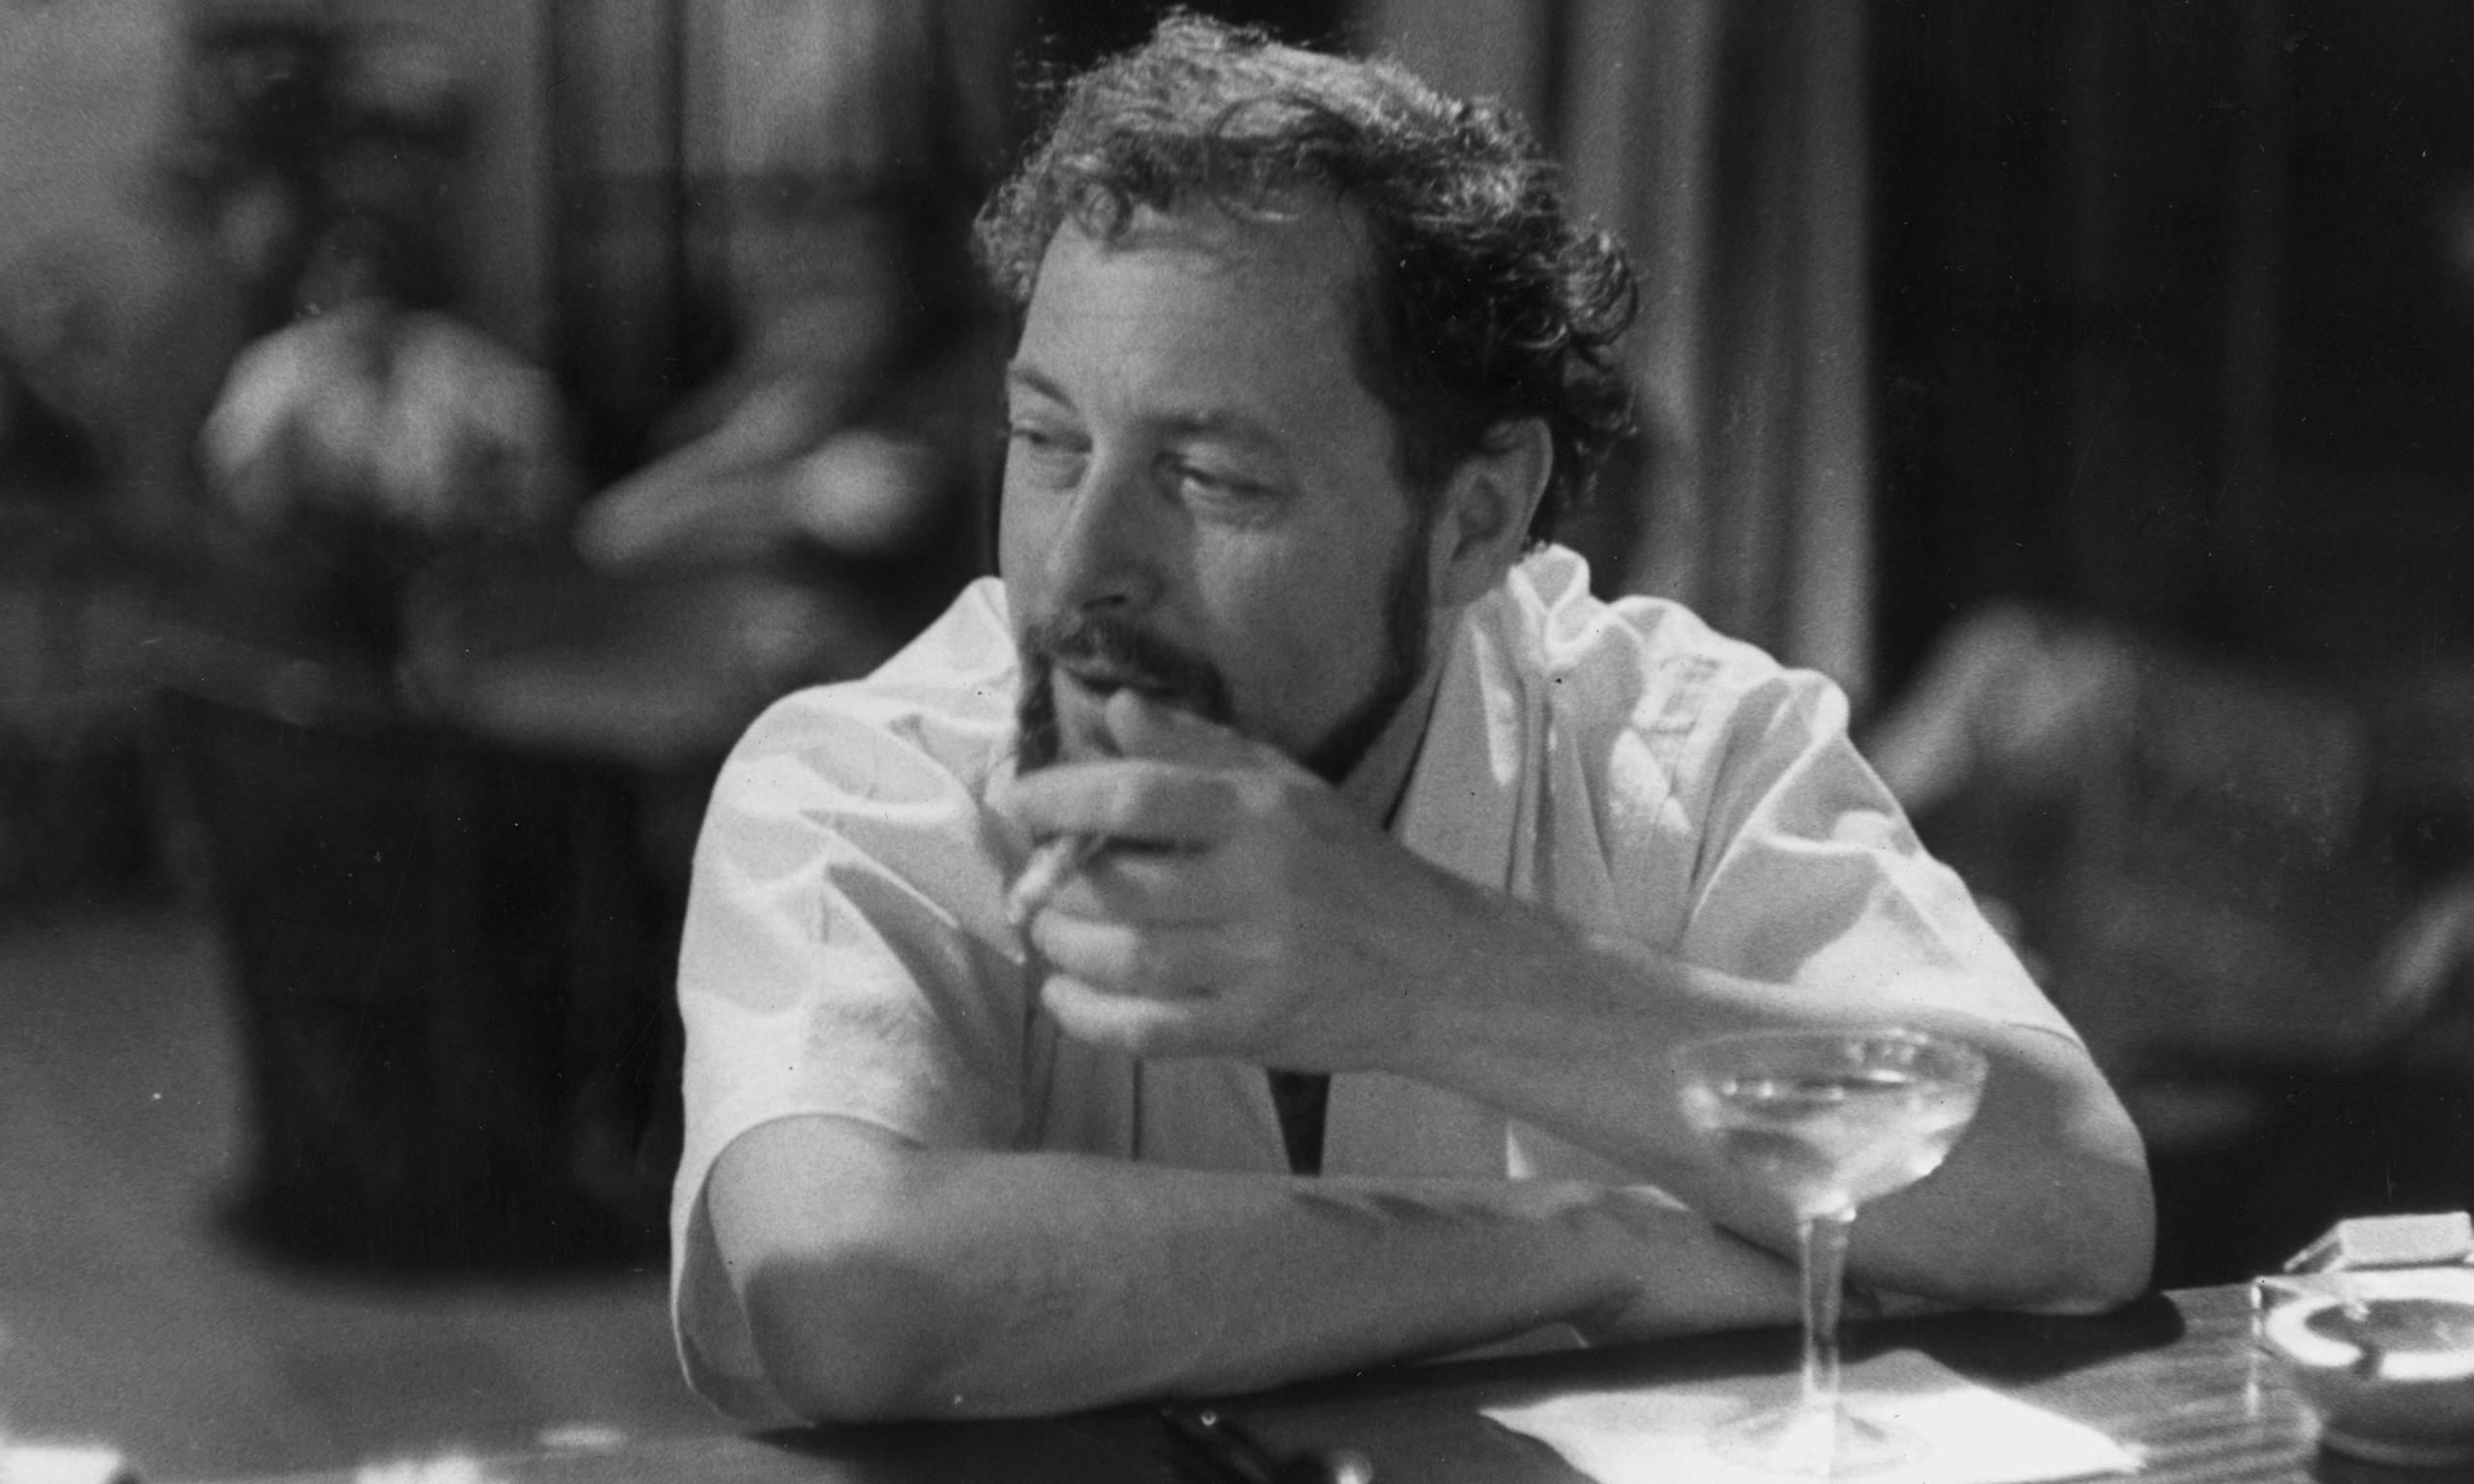 tennessee williams writing style A portrait of writer tennessee williams, who immortalized new orleans in plays  such as a streetcar  tennessee williams was one of the most important  playwrights of the twentieth century  chicago manual of style.